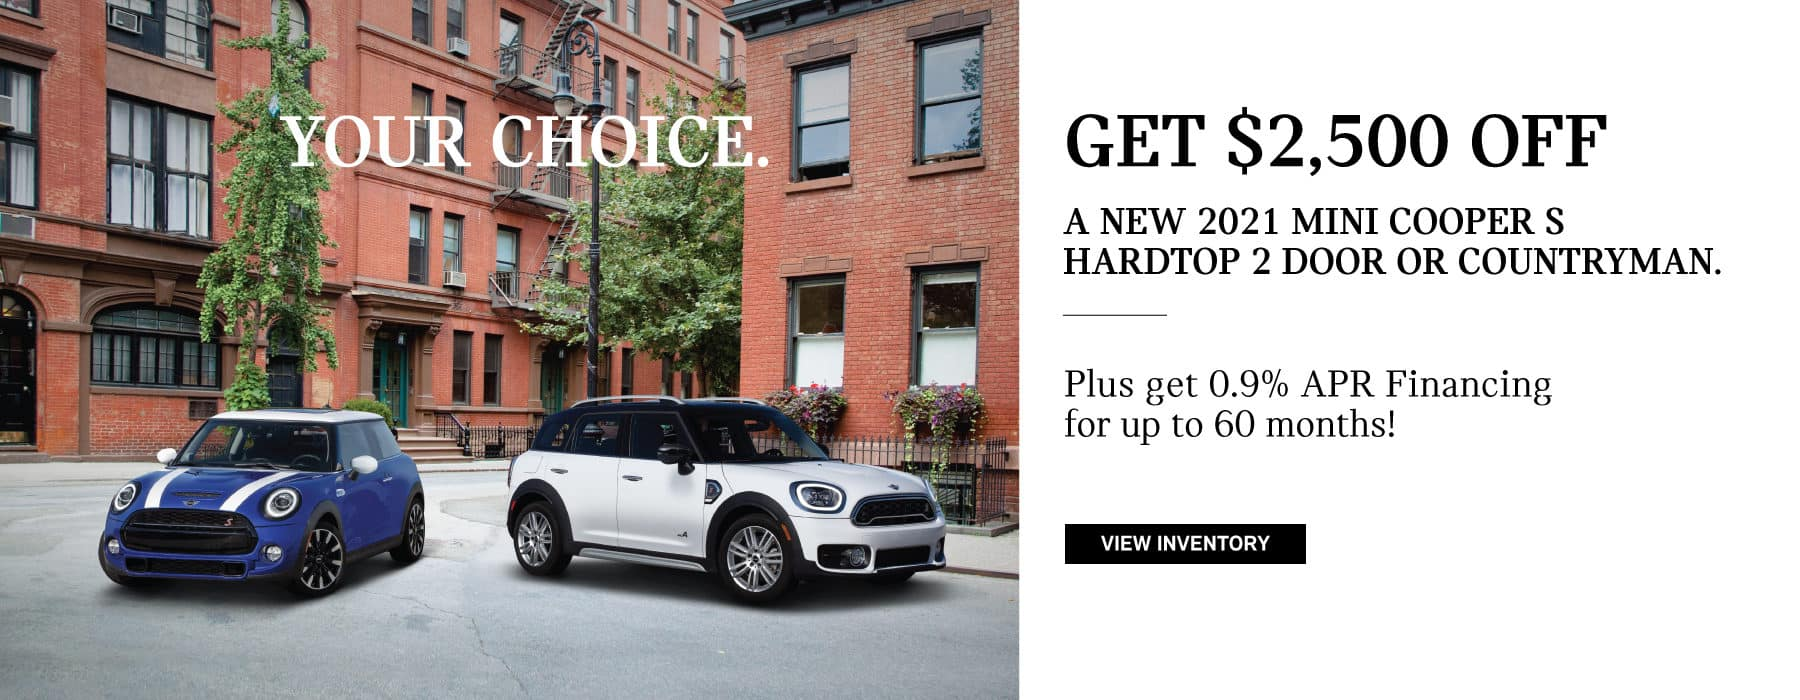 2. Hardtop/Countryman Finance offer: Your Choice – Get $2,500 off a 2021 MINI Cooper S Hardtop 2 Door or Countryman. And 0.9% APR Financing for up to 60 months.